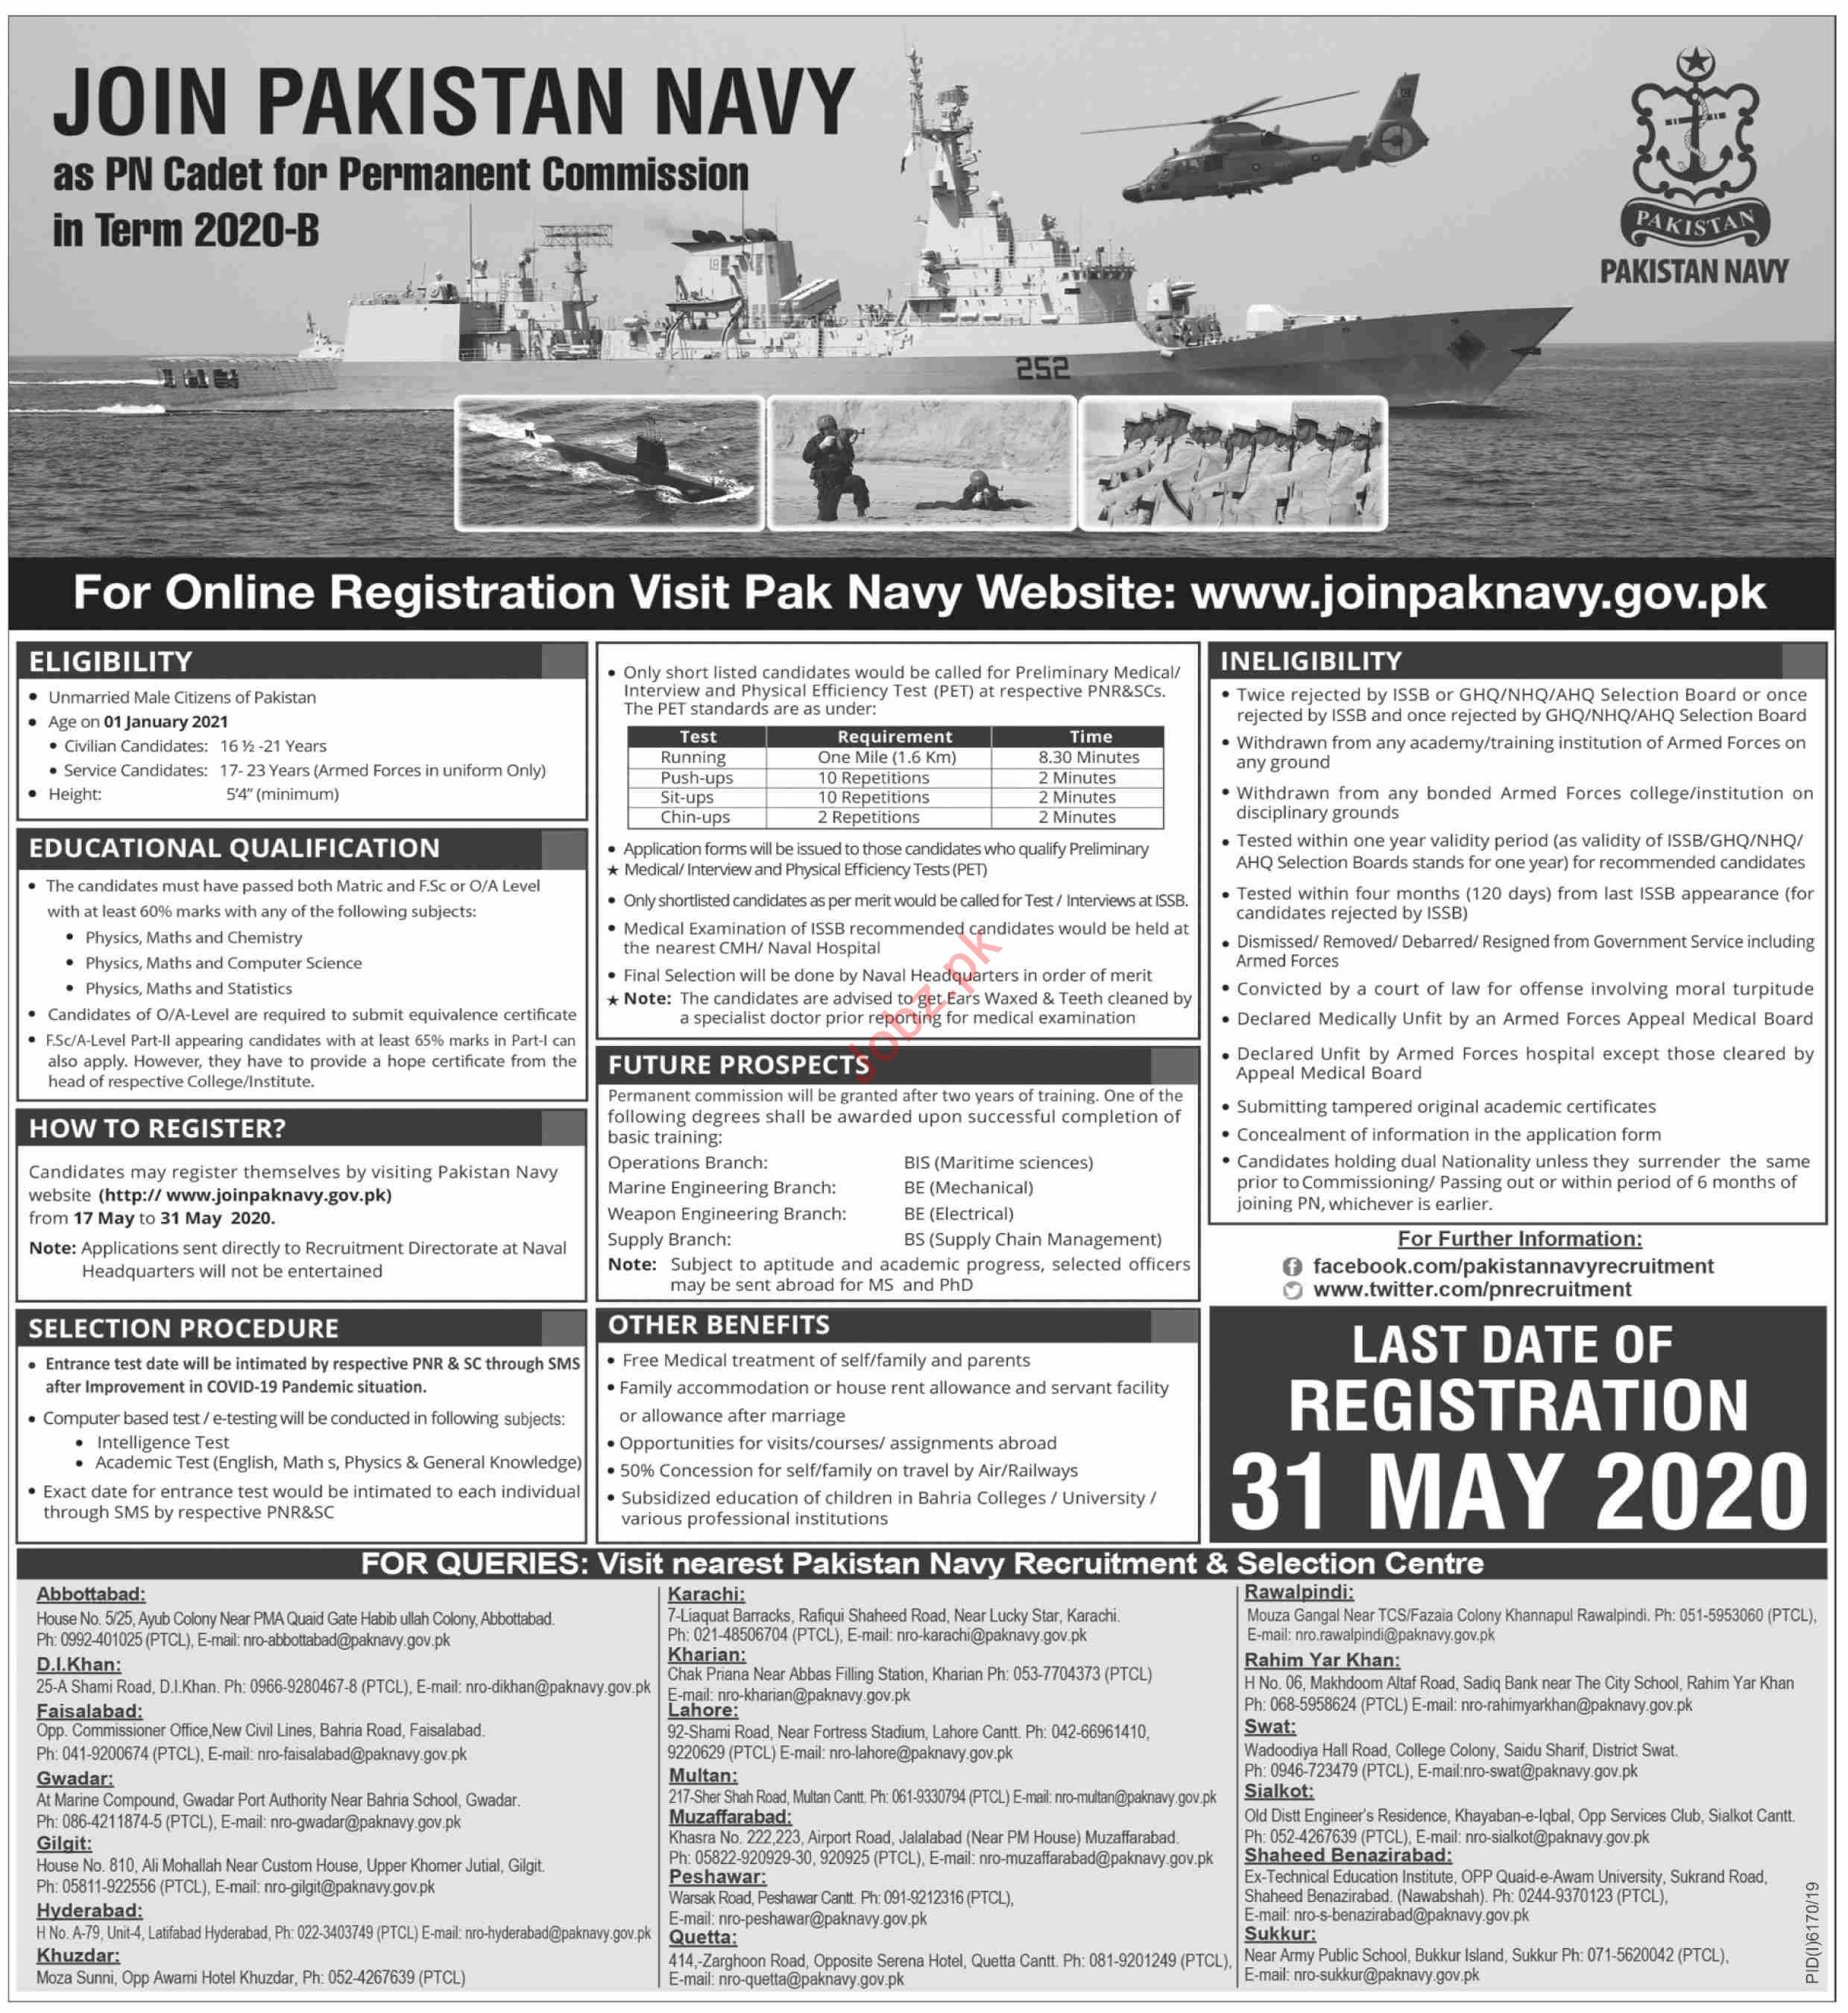 Join Pakistan Navy as PN Cadet for Commission in Term 2020-B